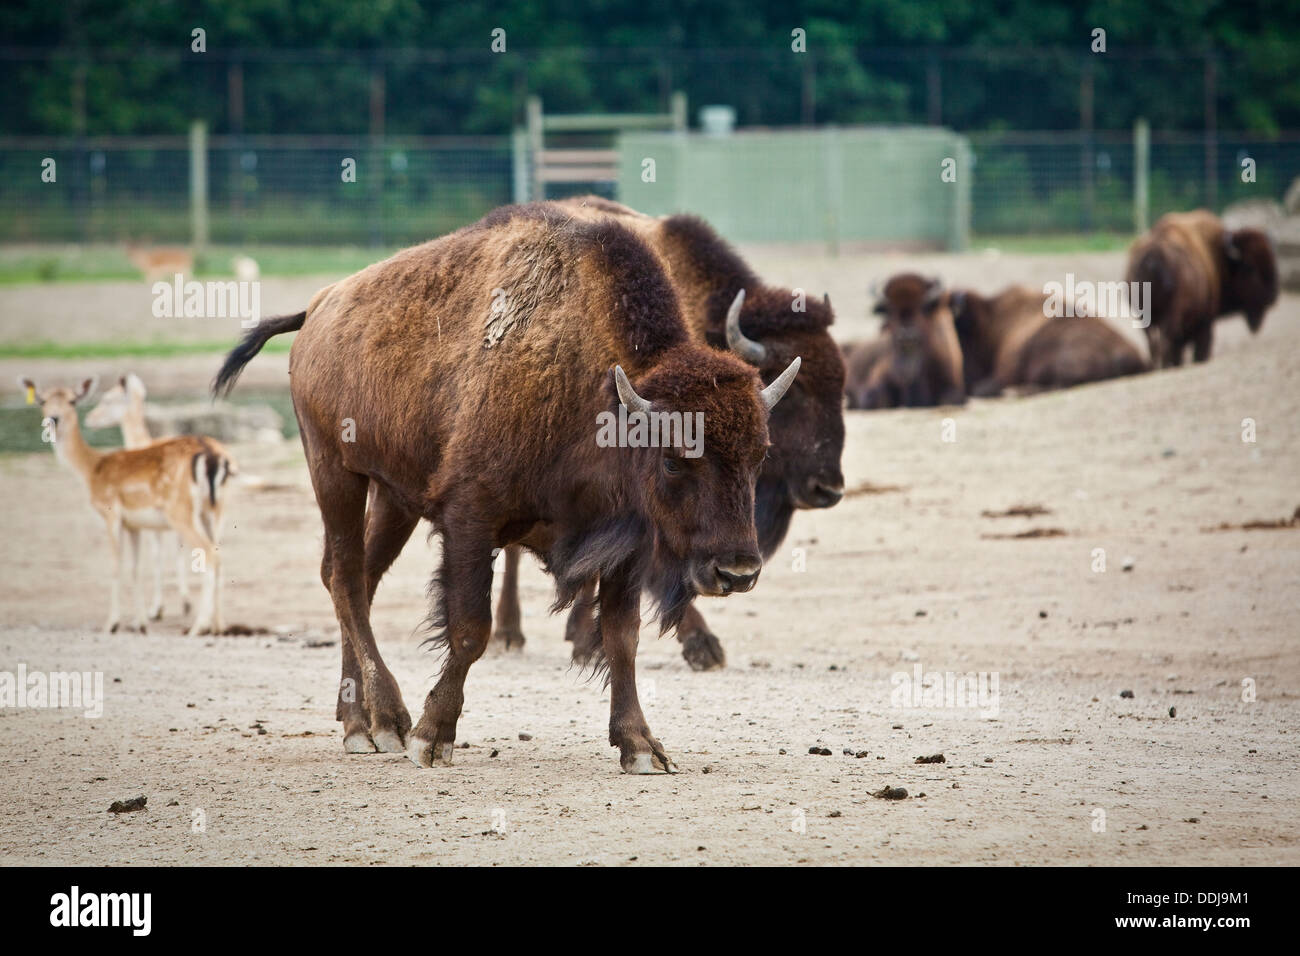 Bisons walk at the African Safari Wildlife Park in Port Clinton, Ohio - Stock Image